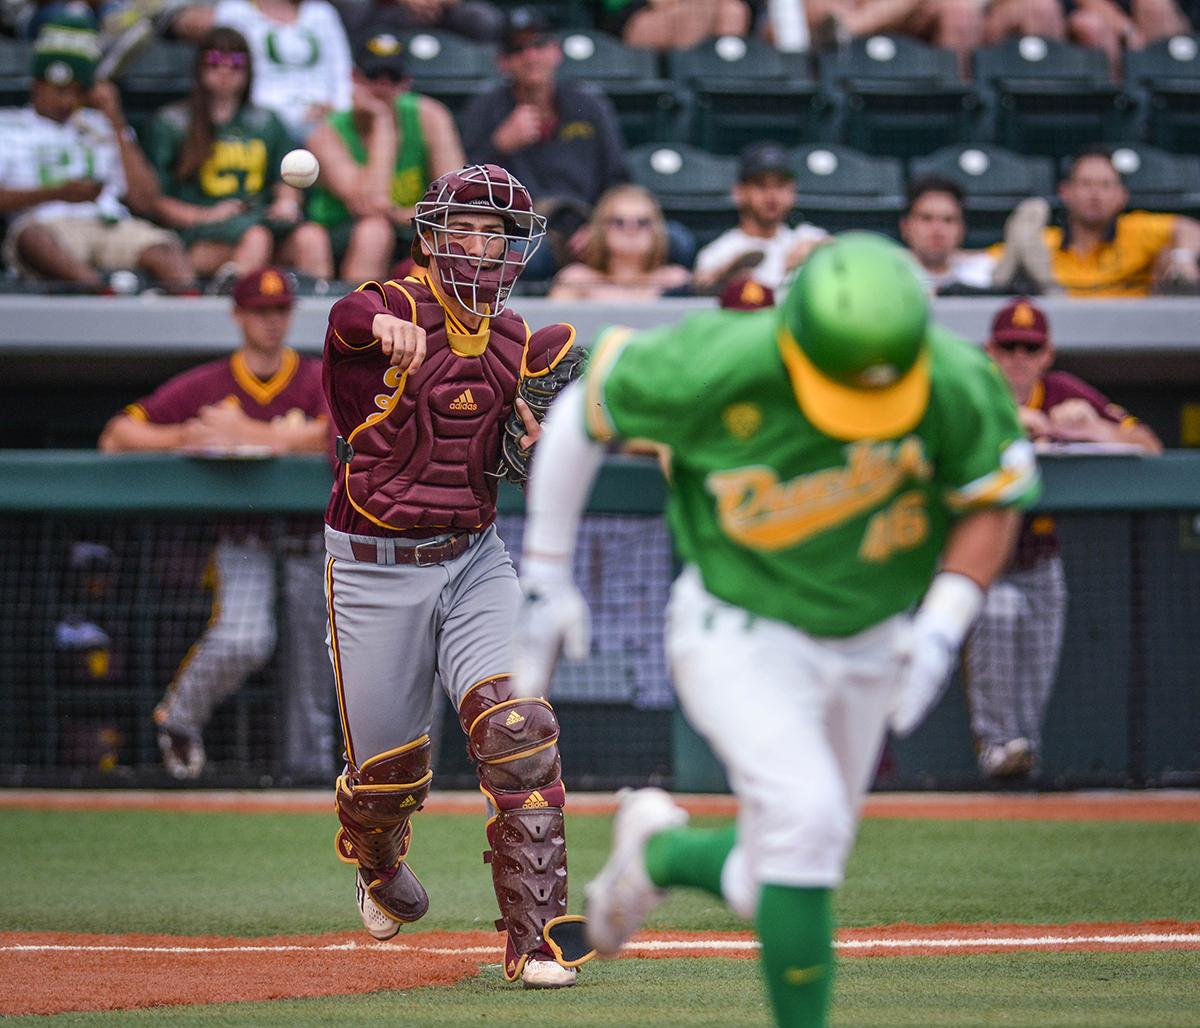 Sun Devils catcher Zach Cerbo (#30) throws the ball to first base to get the runner out. Despite a late comeback, the Ducks fall to Arizona State Sun Devils 4-3 in the second game of a three-game series. Photo by Jacob Smith, Oregon News Lab